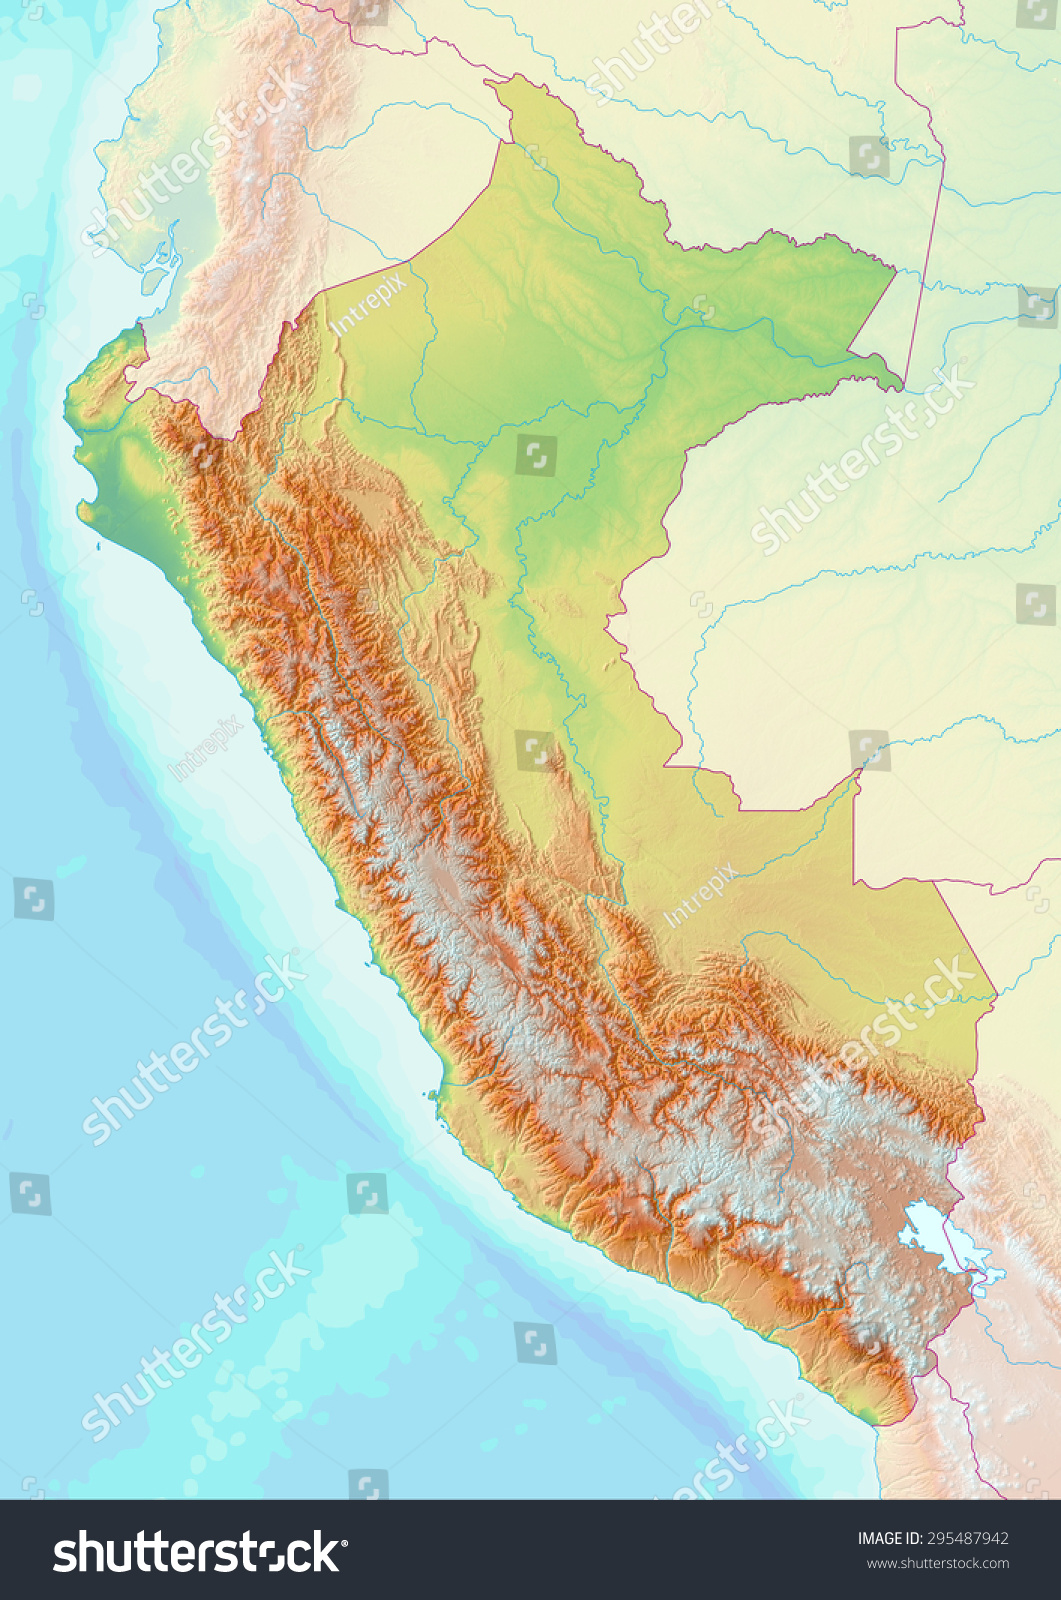 Topographic map peru shaded relief elevation stock illustration topographic map of peru with shaded relief and elevation colors elements of this image furnished gumiabroncs Choice Image